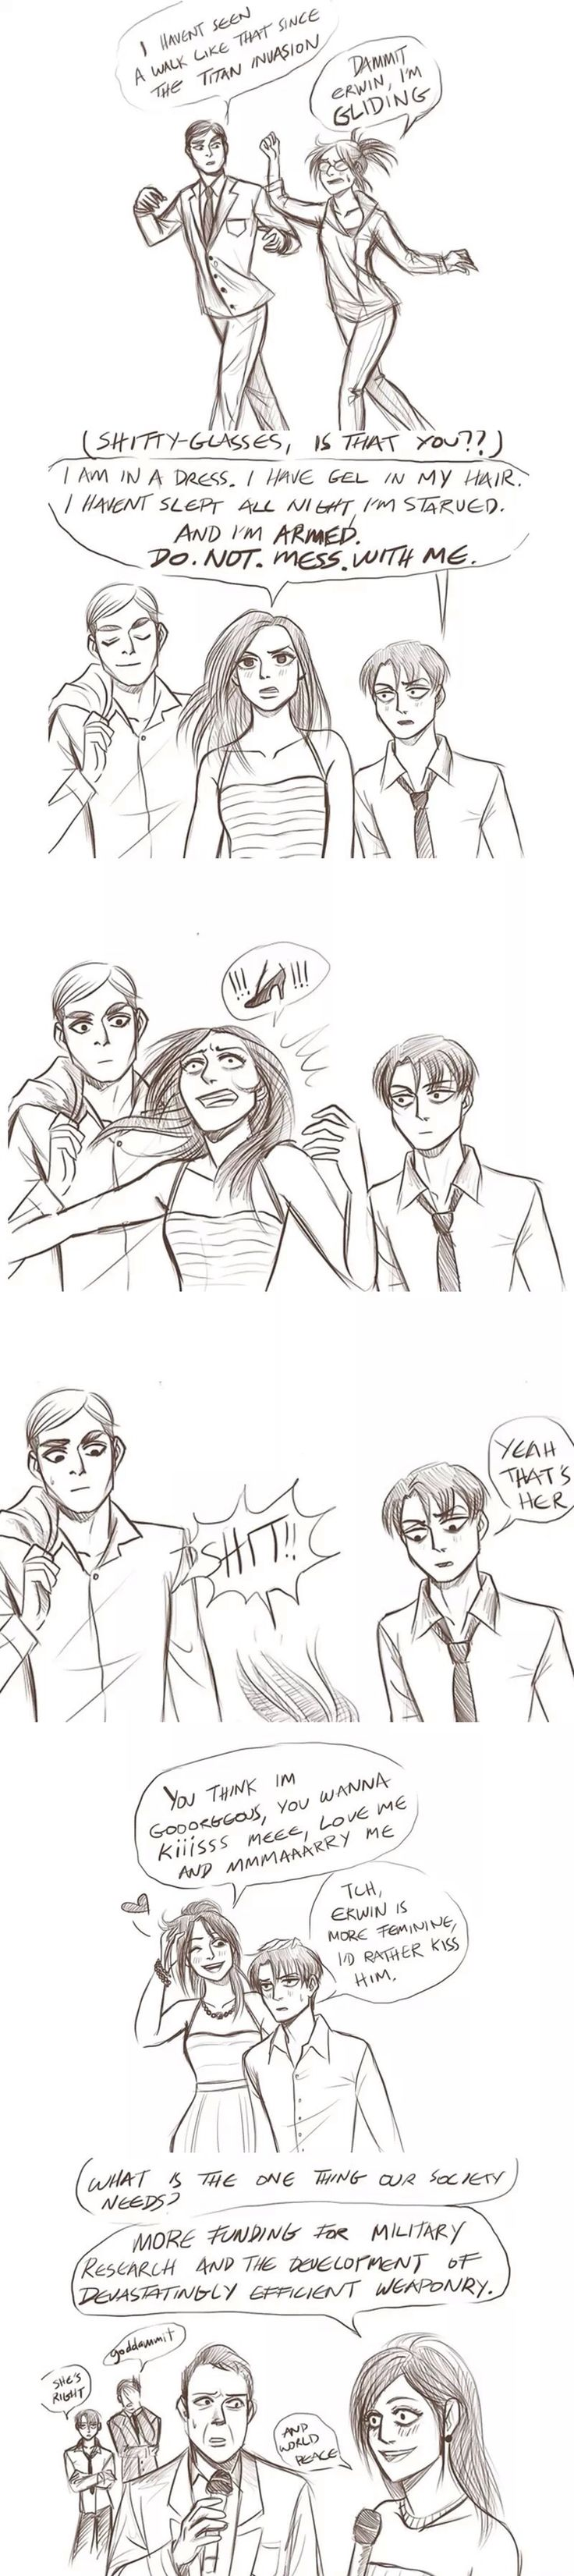 erwin and levi relationship quotes